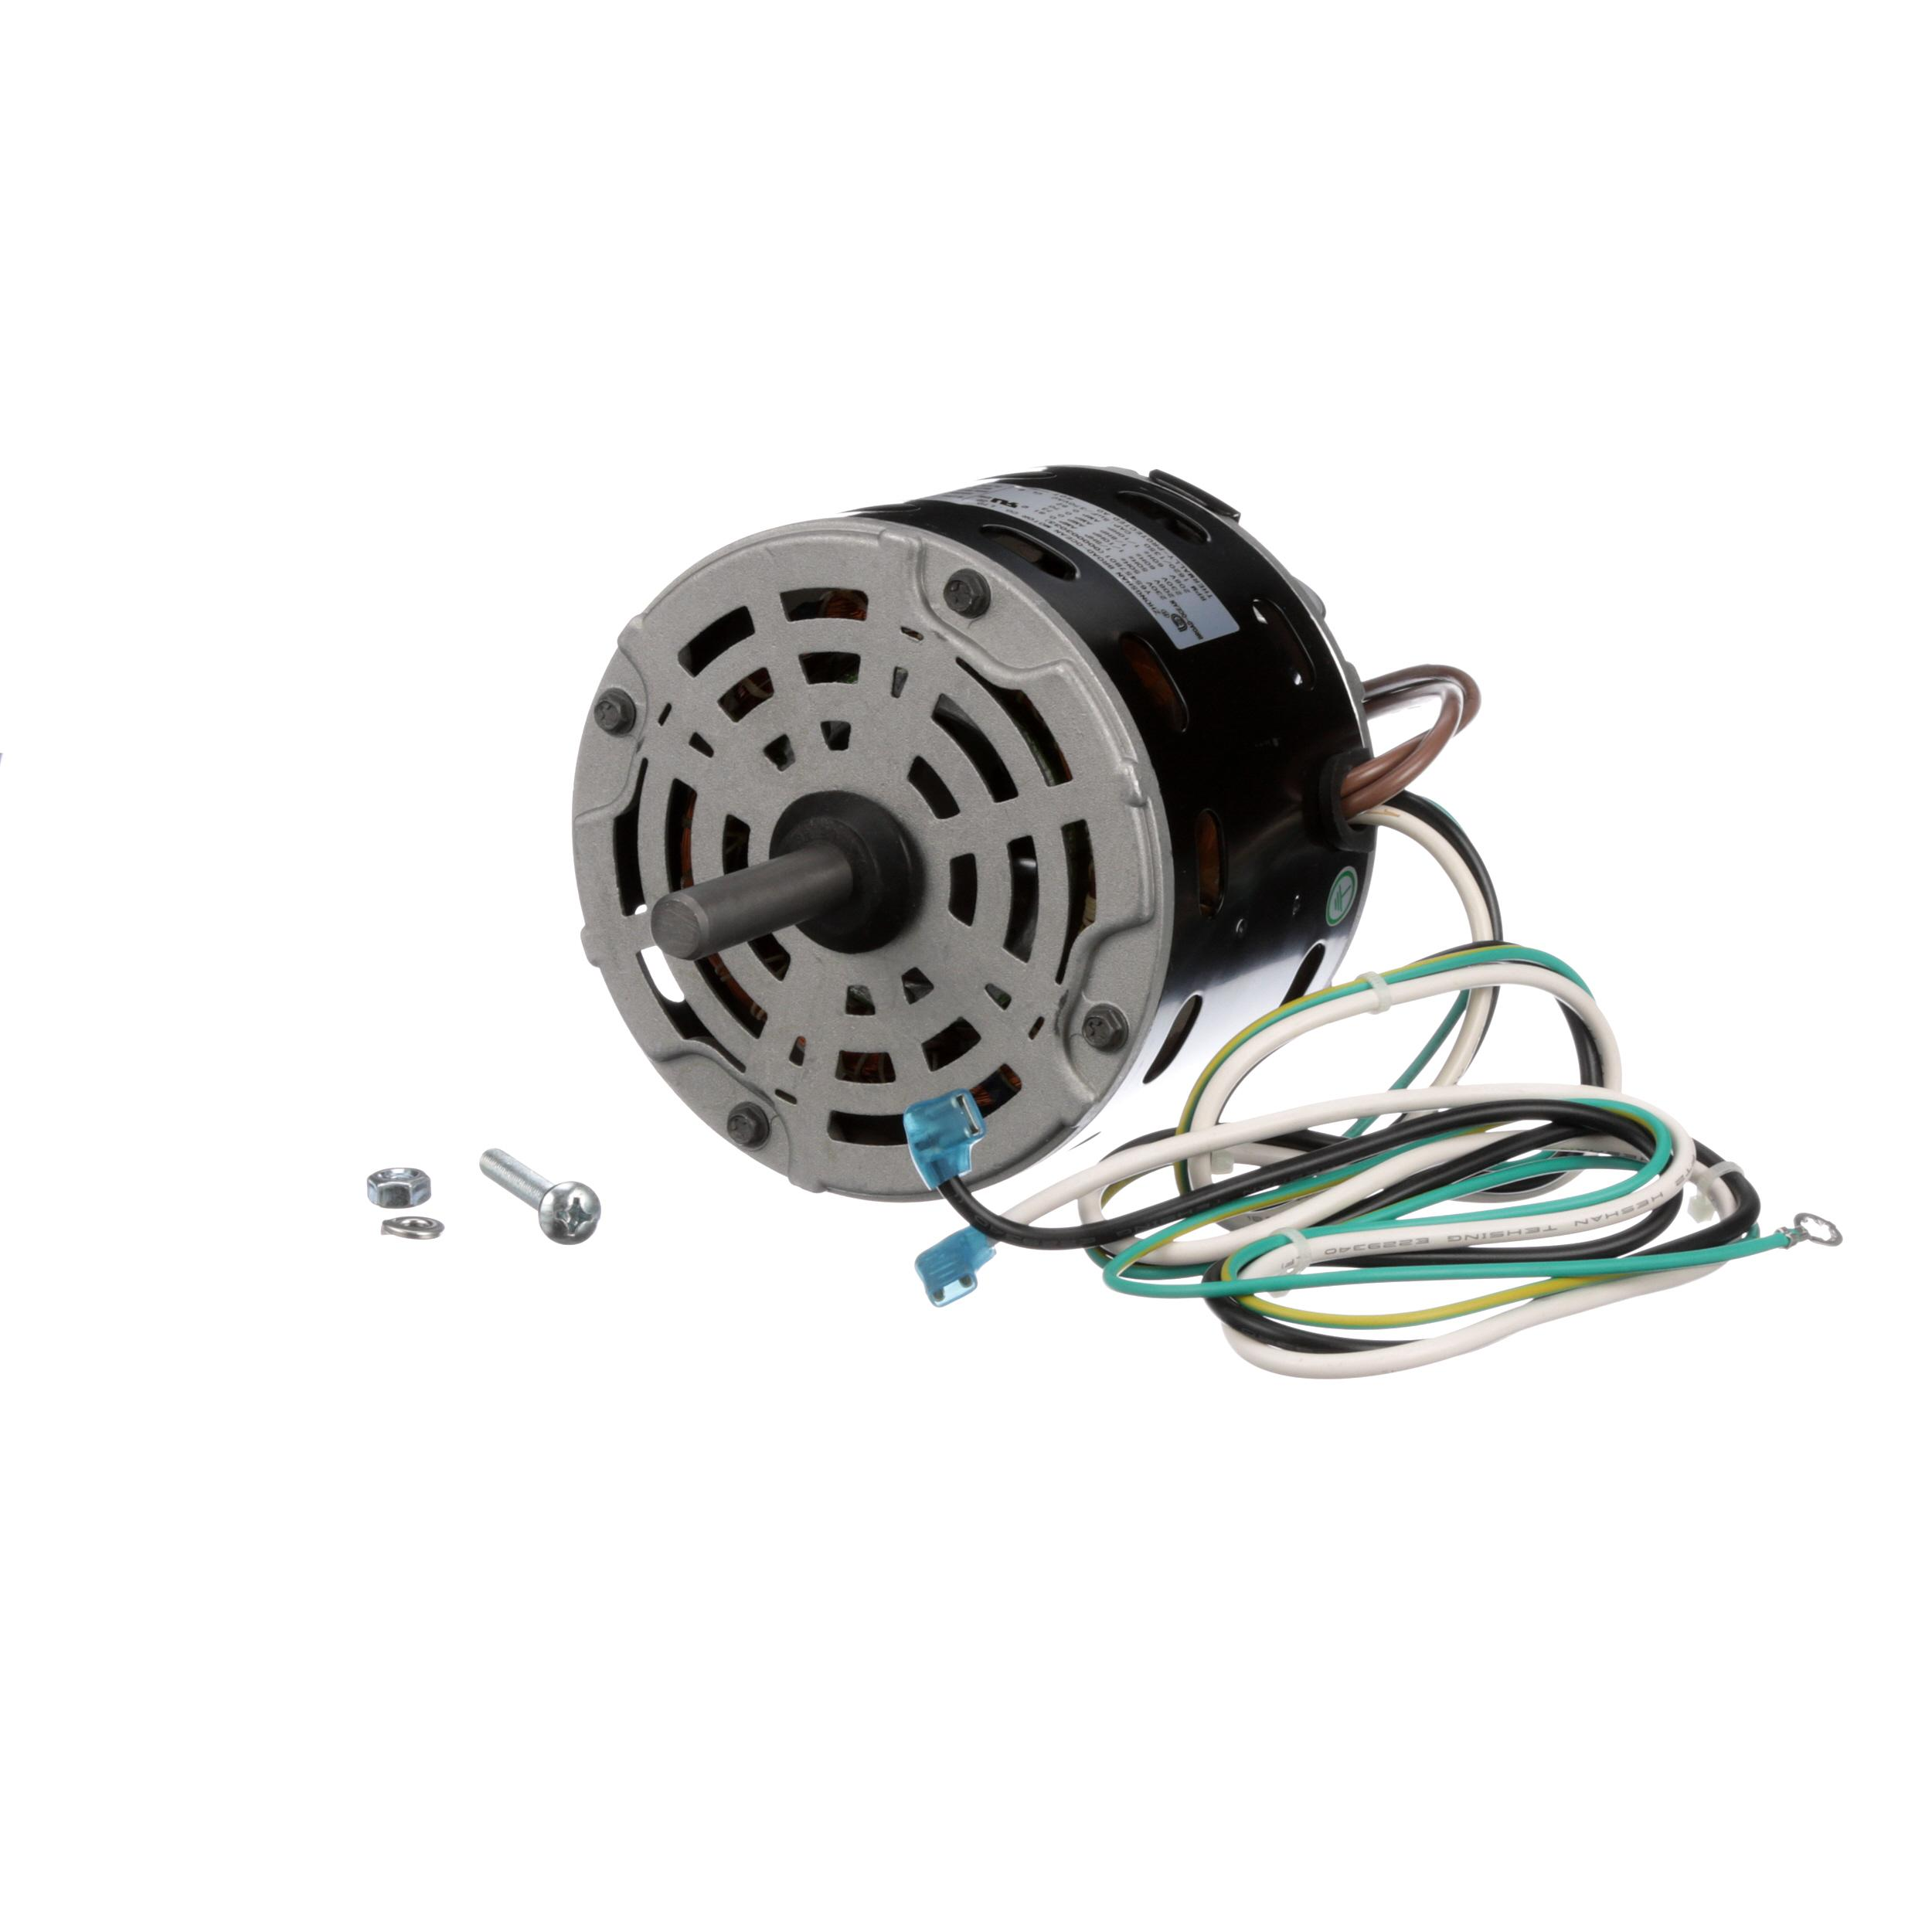 MANITOWOC FAN MOTOR KIT 208-230V 50/60HZ